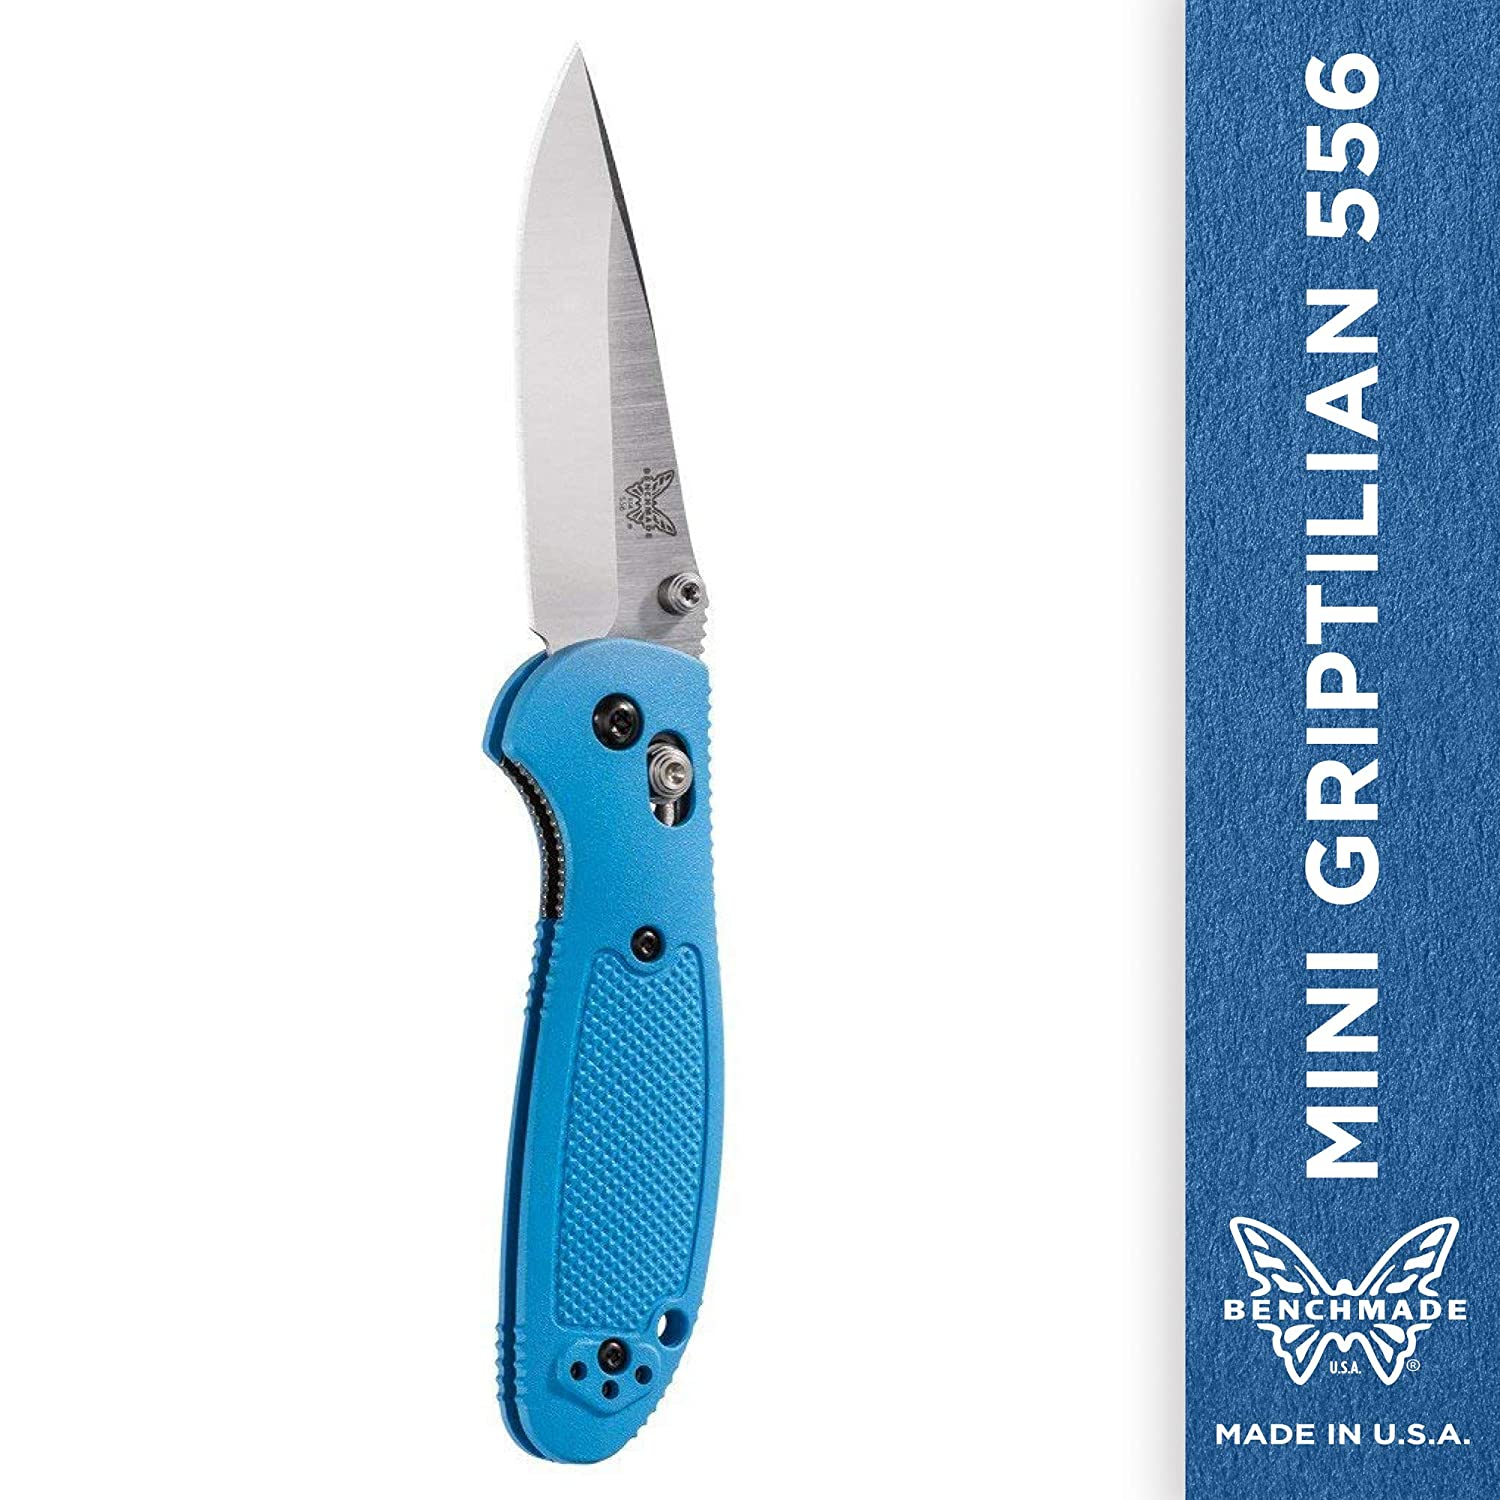 Benchmade – Mini Griptilian 556 EDC Manual Open Folding Knife Made in USA with CPM-S30V Steel, Drop-Point Blade, Plain Edge, Satin Finish, Blue Handle